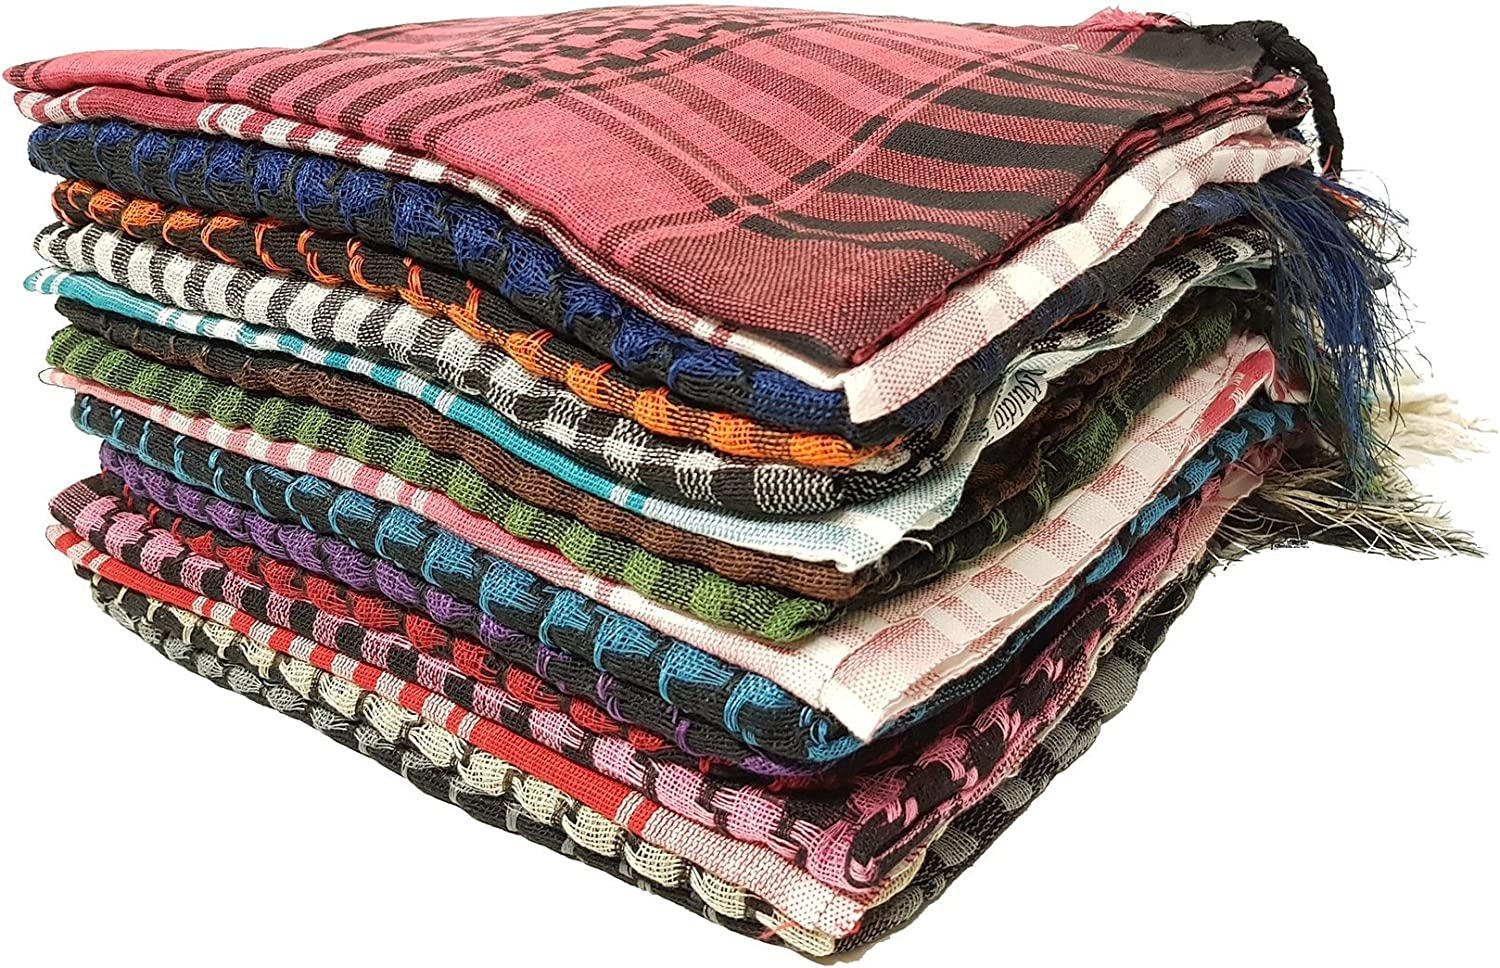 Kuldip Arafat Shemagh Arab Headscarf. Factory Seconds. Mixed colors. Pack of 20